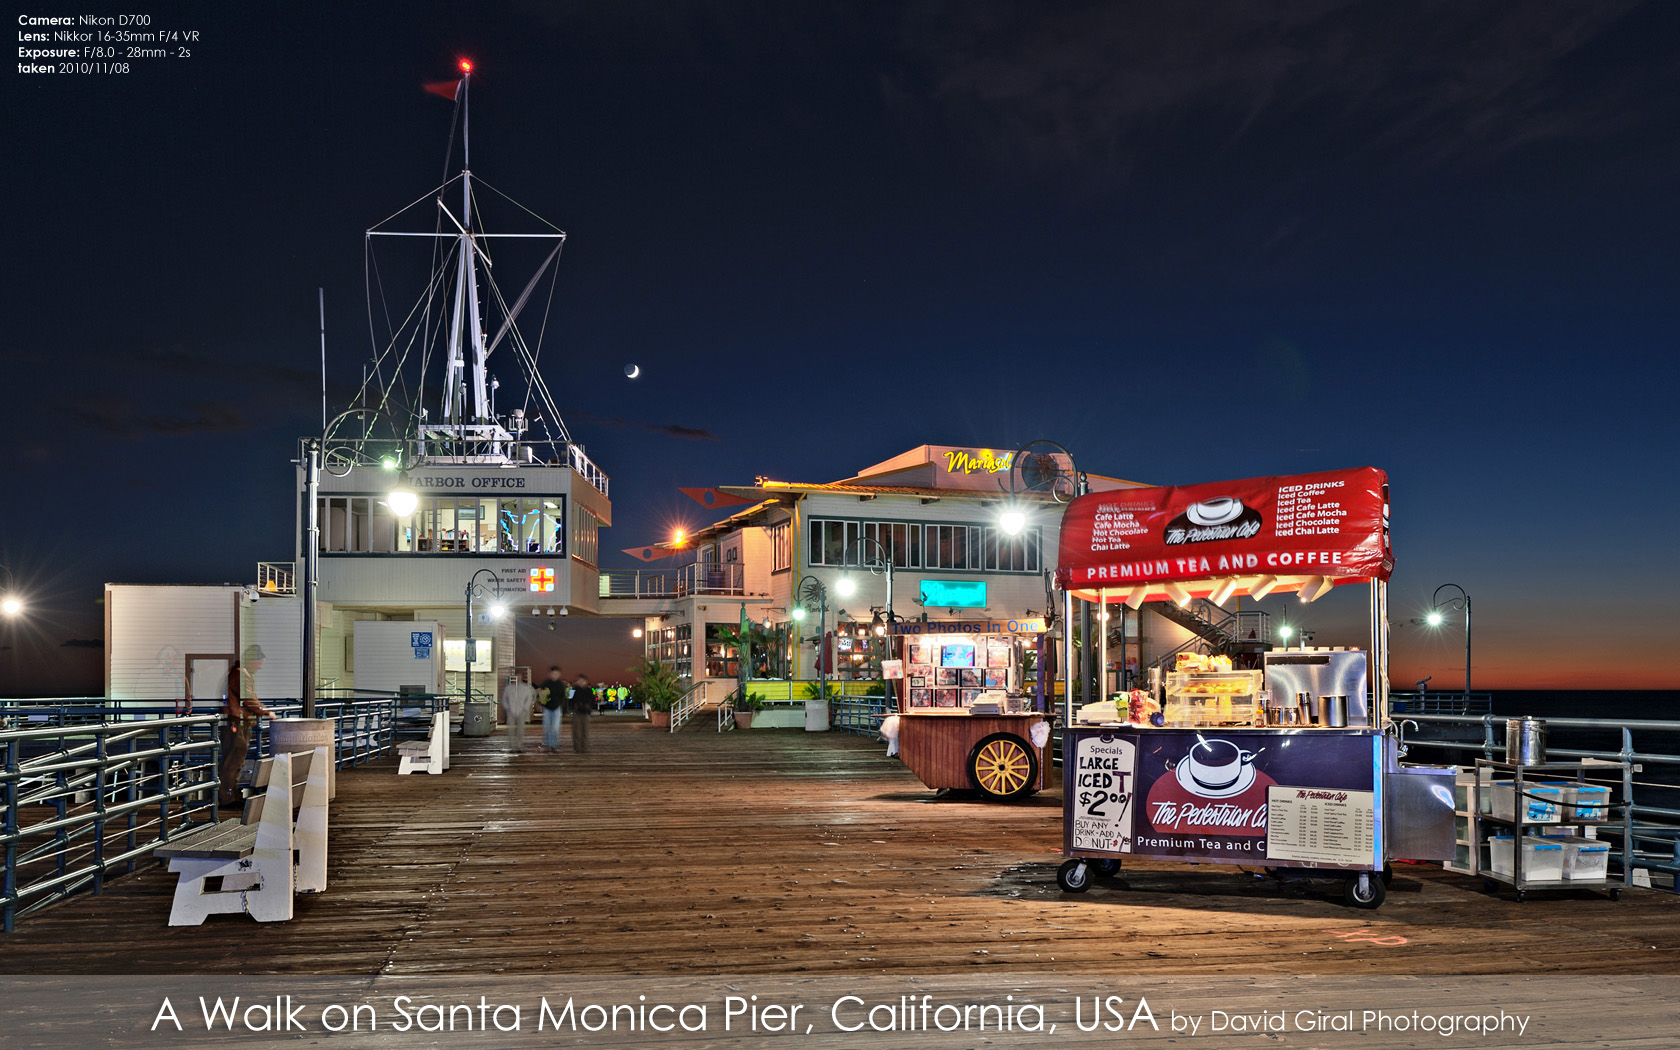 Harbour Office, Mariasol Restauran and stores on Santa Monica Pier at the blue hour, California by David Giral